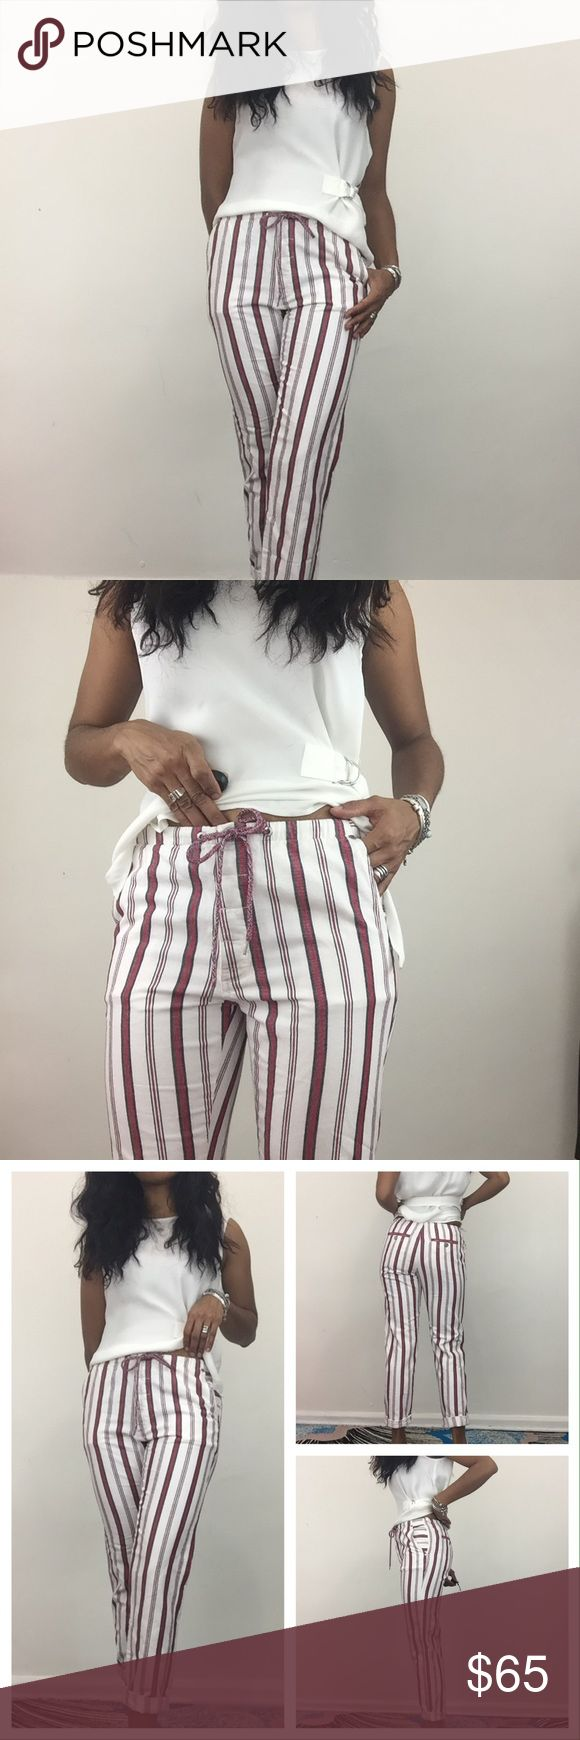 ♥️Z&V Stripped Cotton Pants Really cute and comfortable cotton stripped pants with front button up and tie. Features side pockets and waist tie. Brand new with tags. Zadig & Voltaire Pants